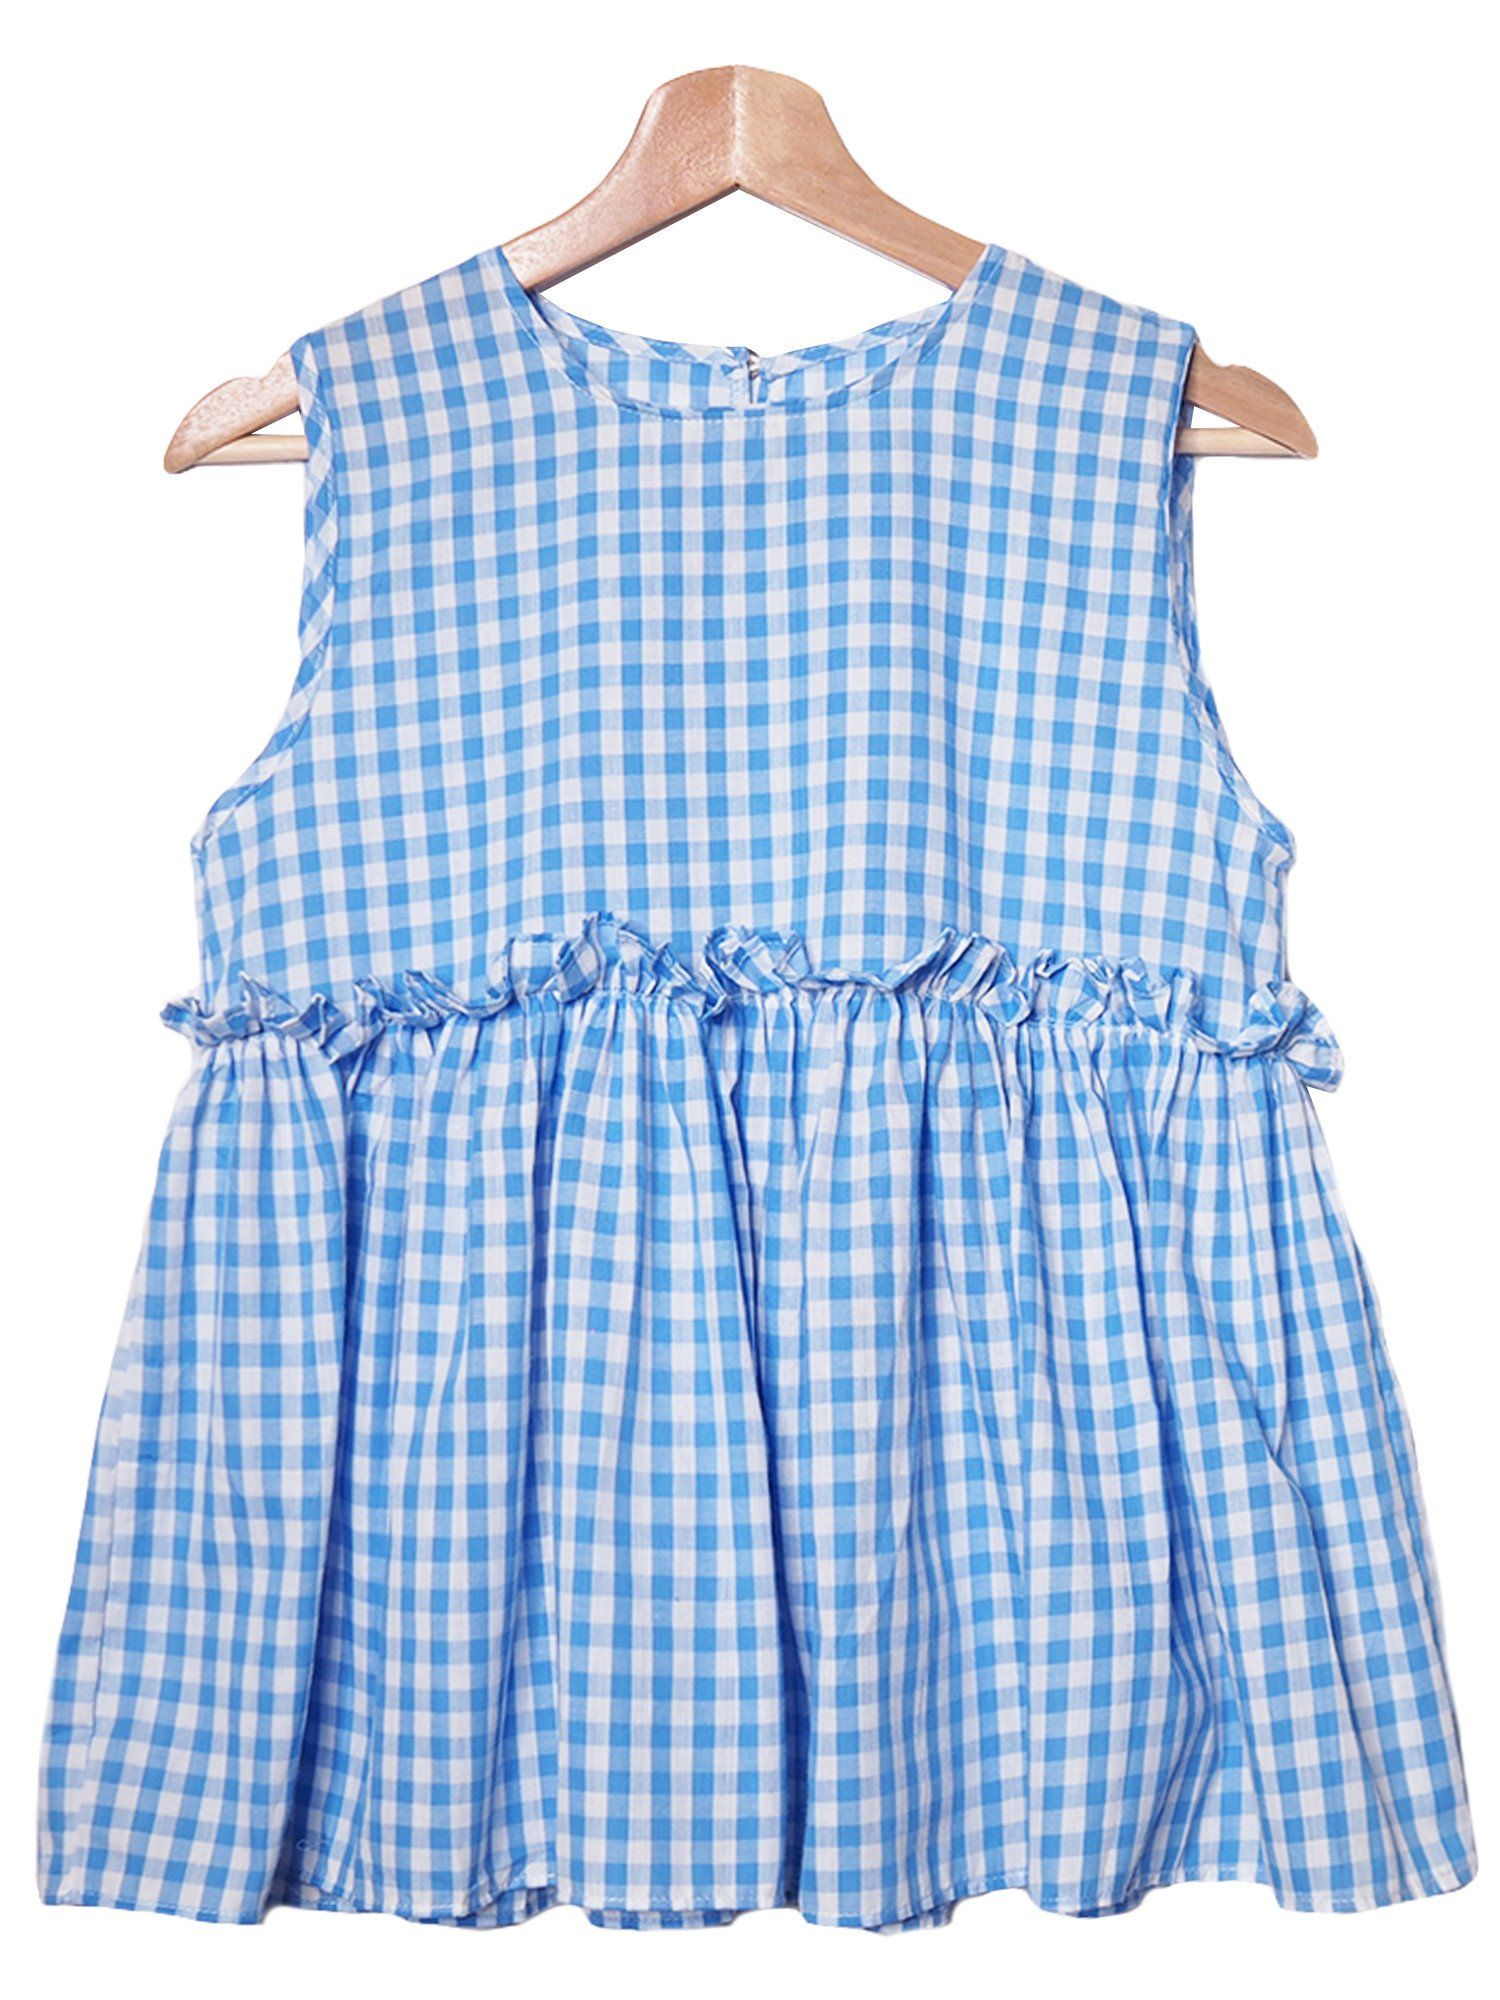 Porsha Gingham Frilly Peplum Sleeveless Top Products